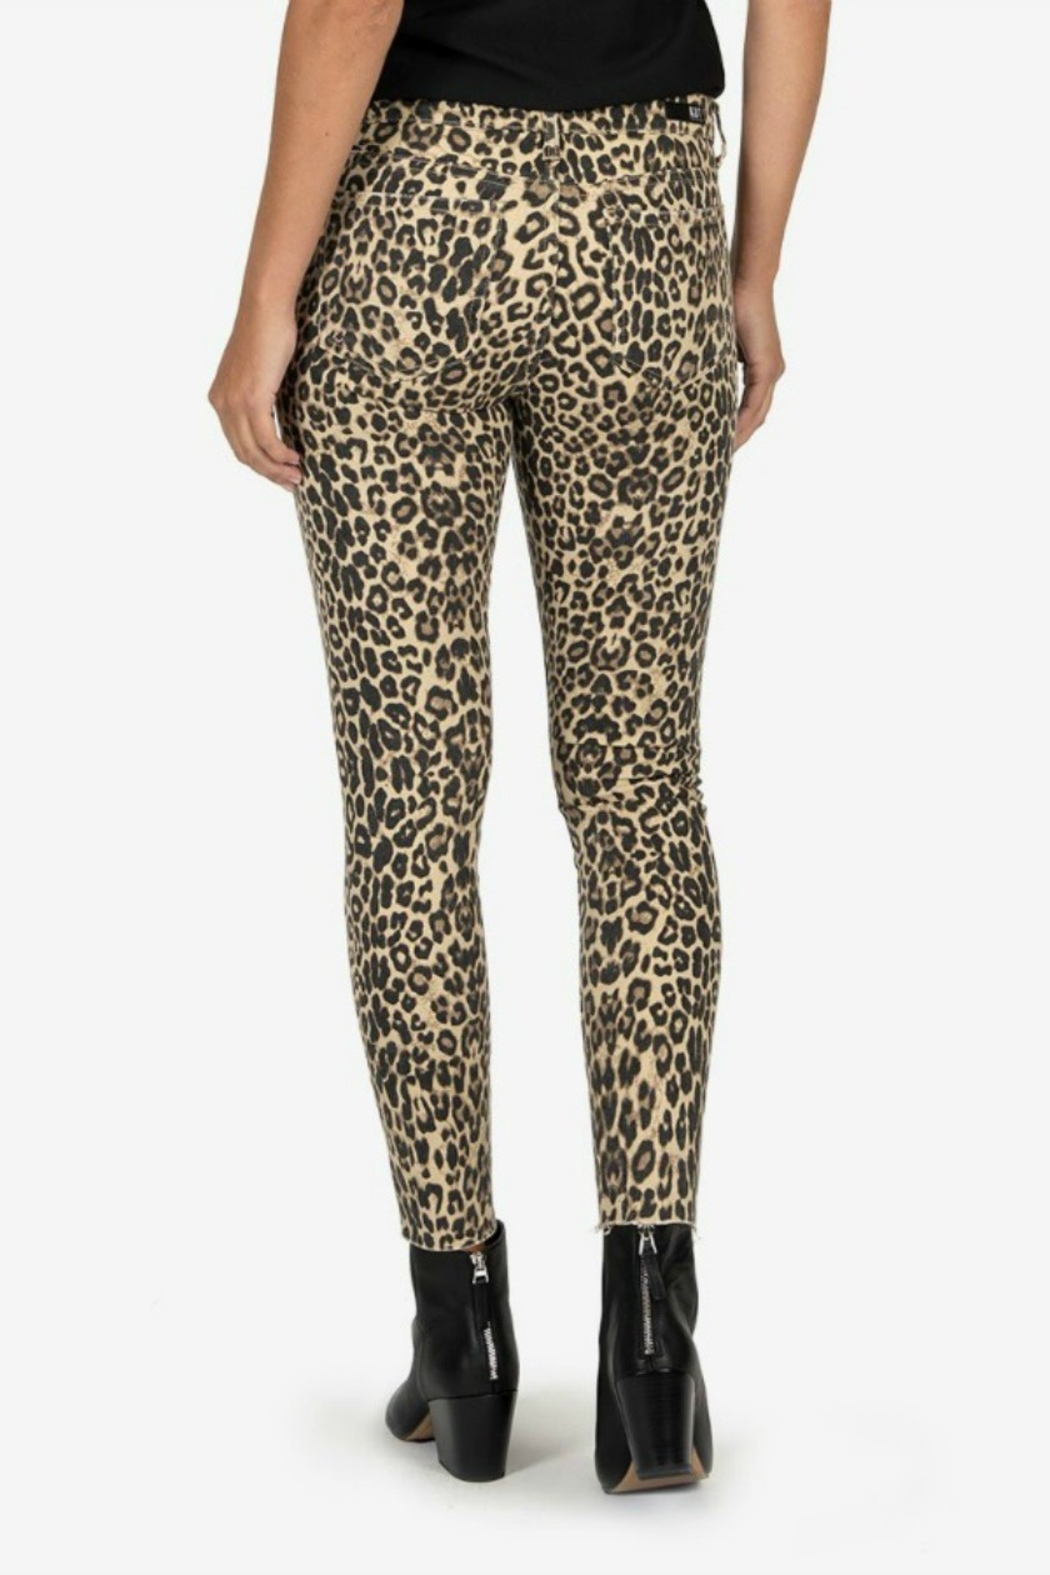 Kut from the Kloth DONNA LEOPARD - Side Cropped Image